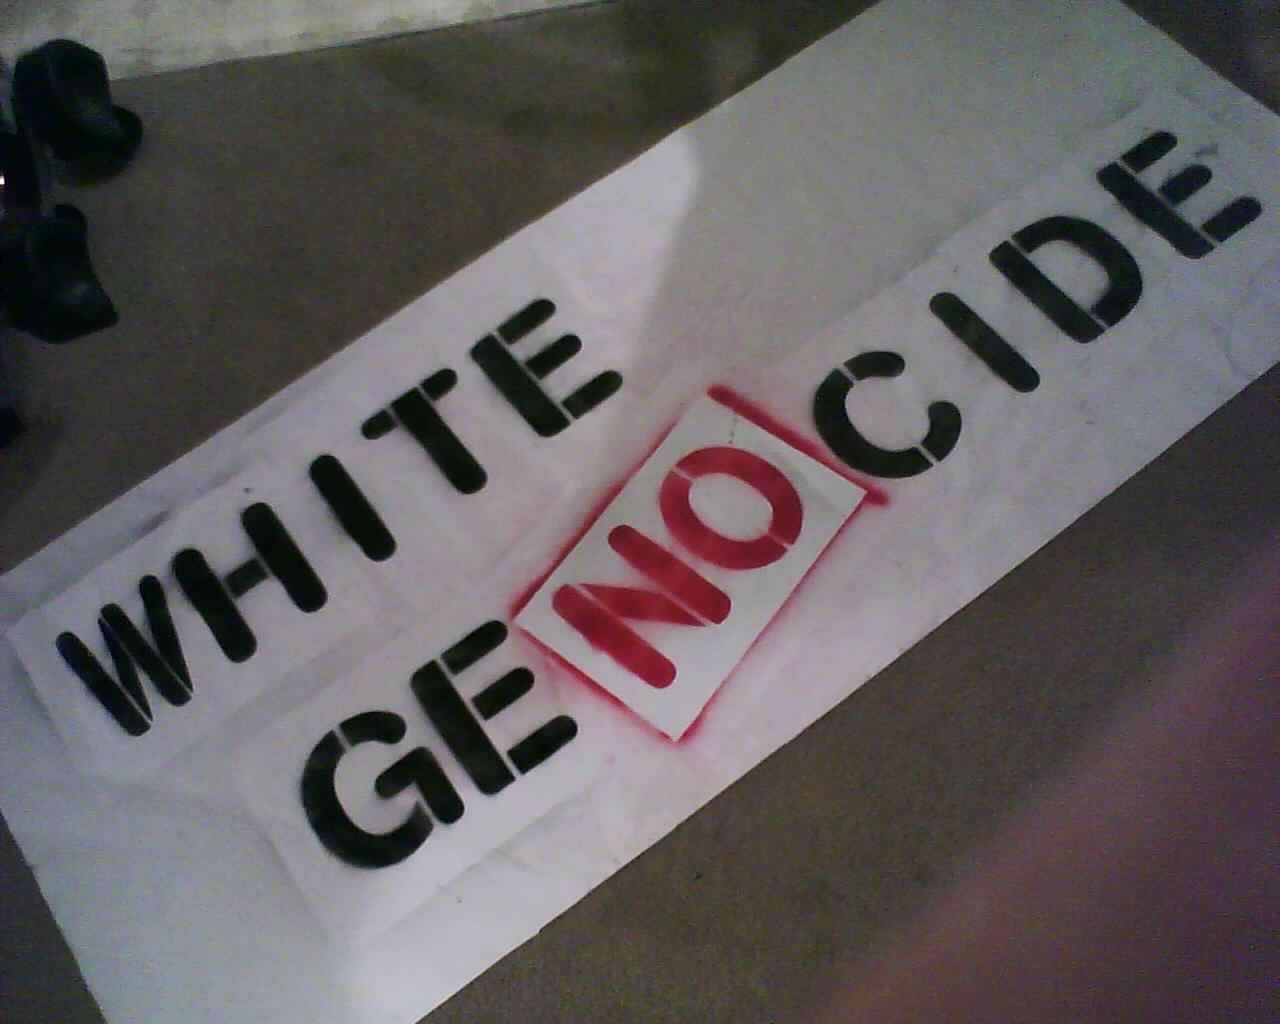 genocides photo essay ramani s blog whites genocide photo essay